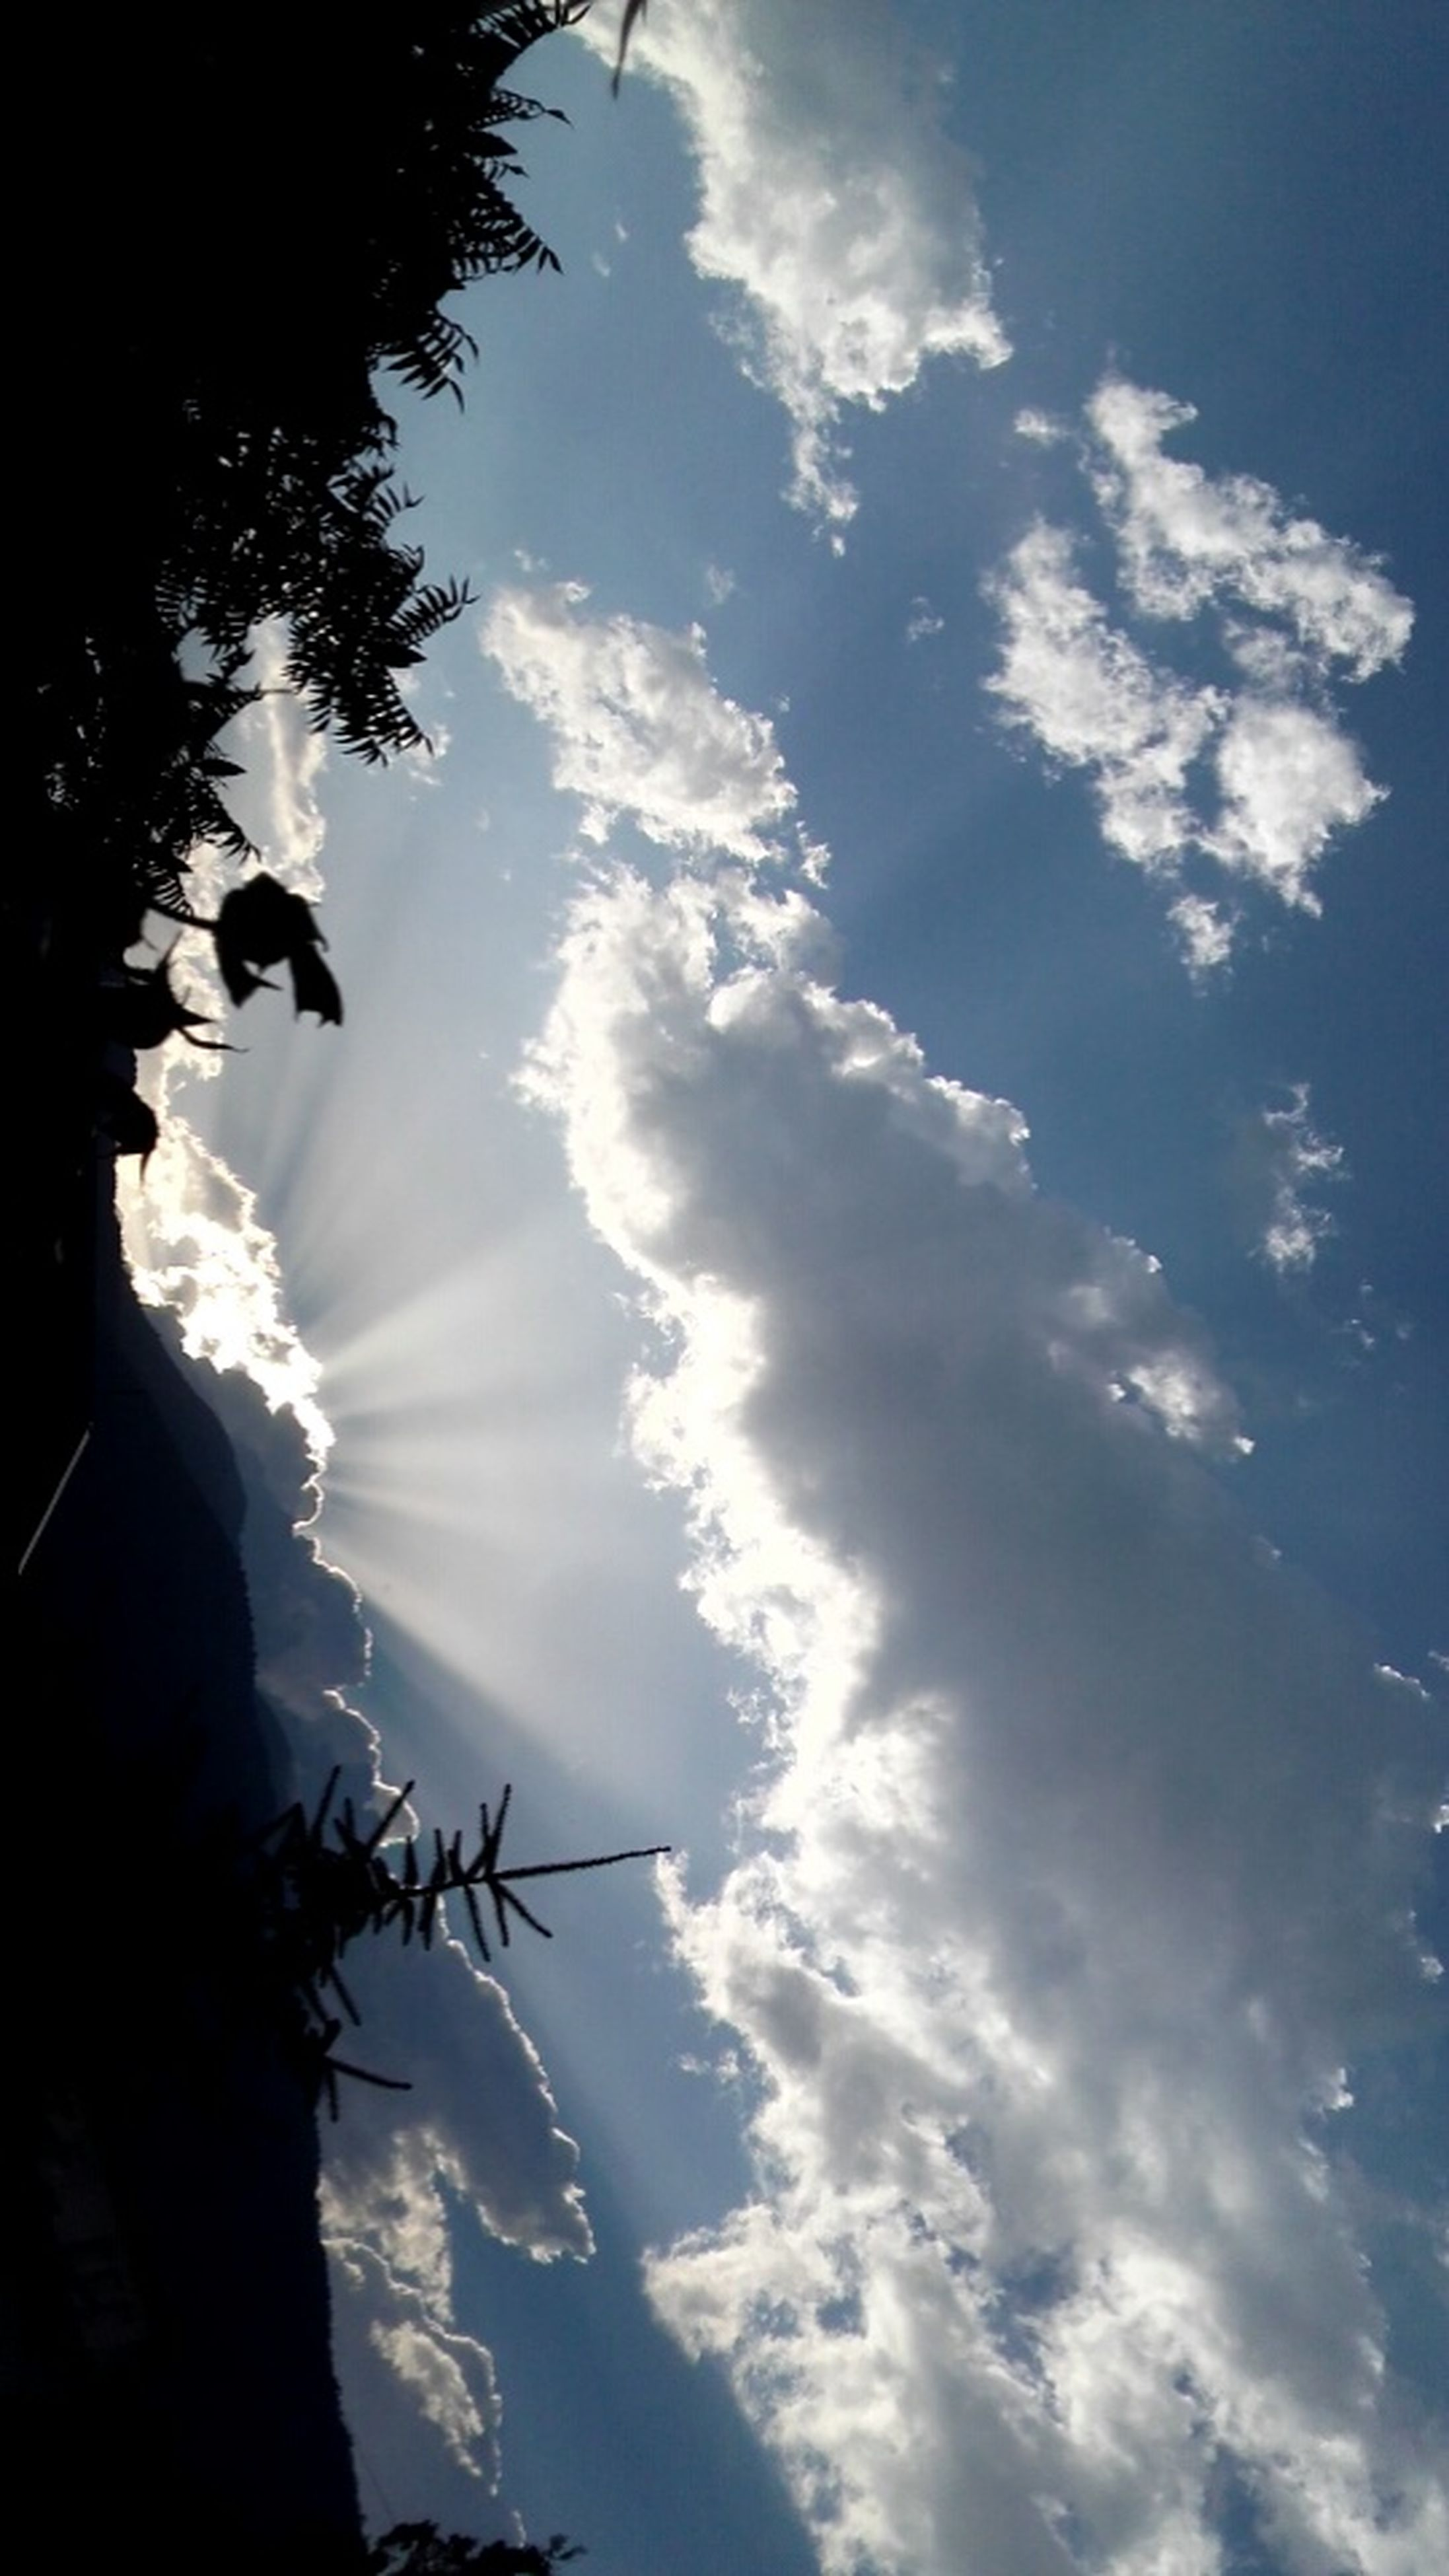 low angle view, sky, day, cloud - sky, sunlight, nature, silhouette, animal themes, outdoors, no people, beauty in nature, tree, flying